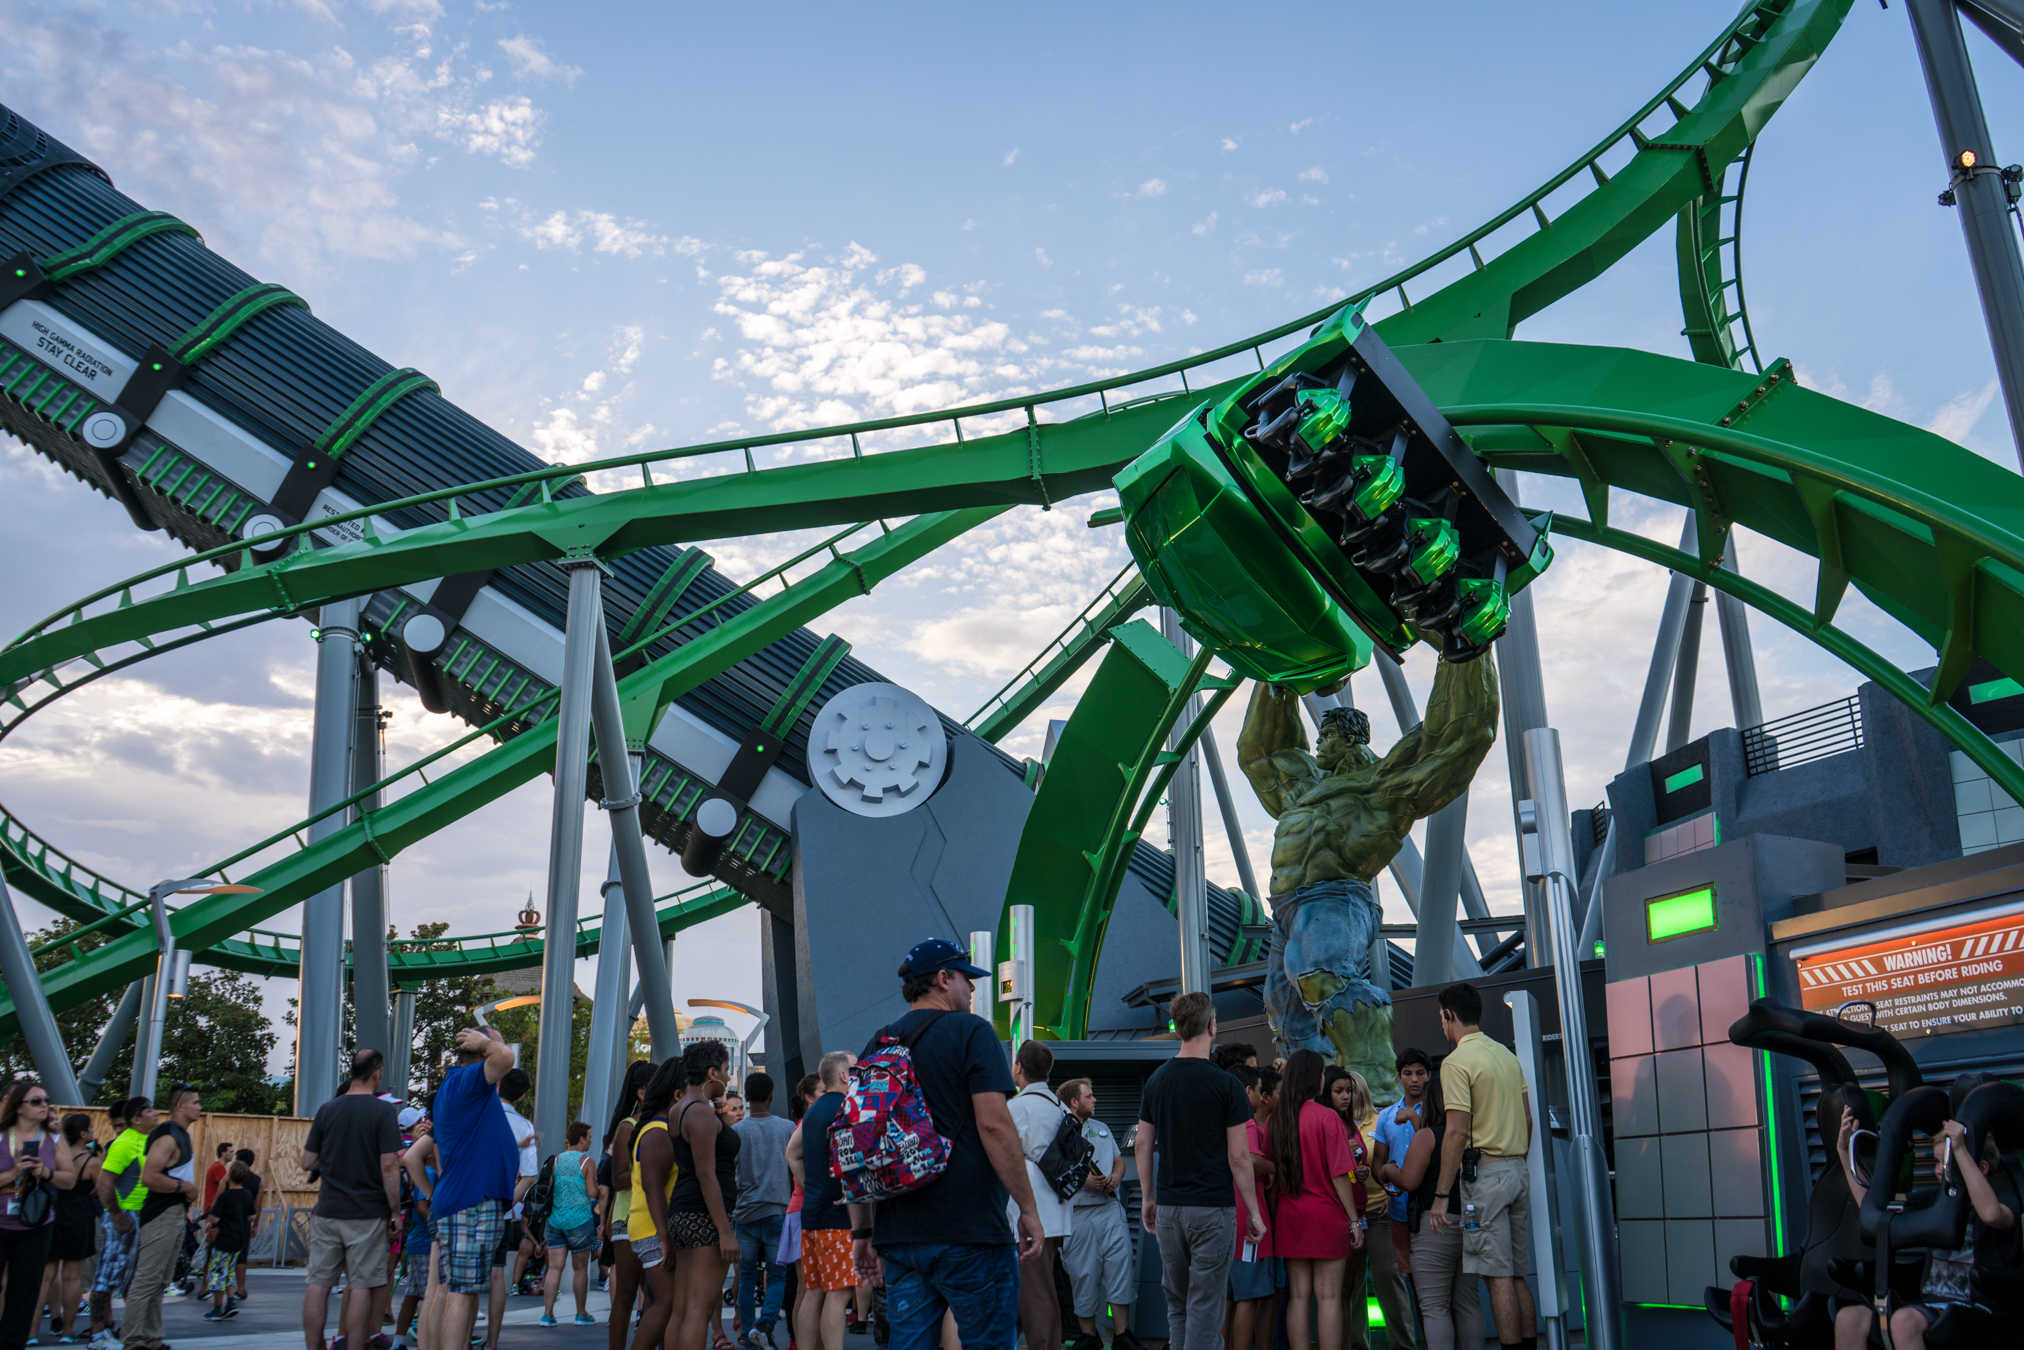 New Incredible Hulk Coaster begins soft opening at Universal's Islands of Adventure